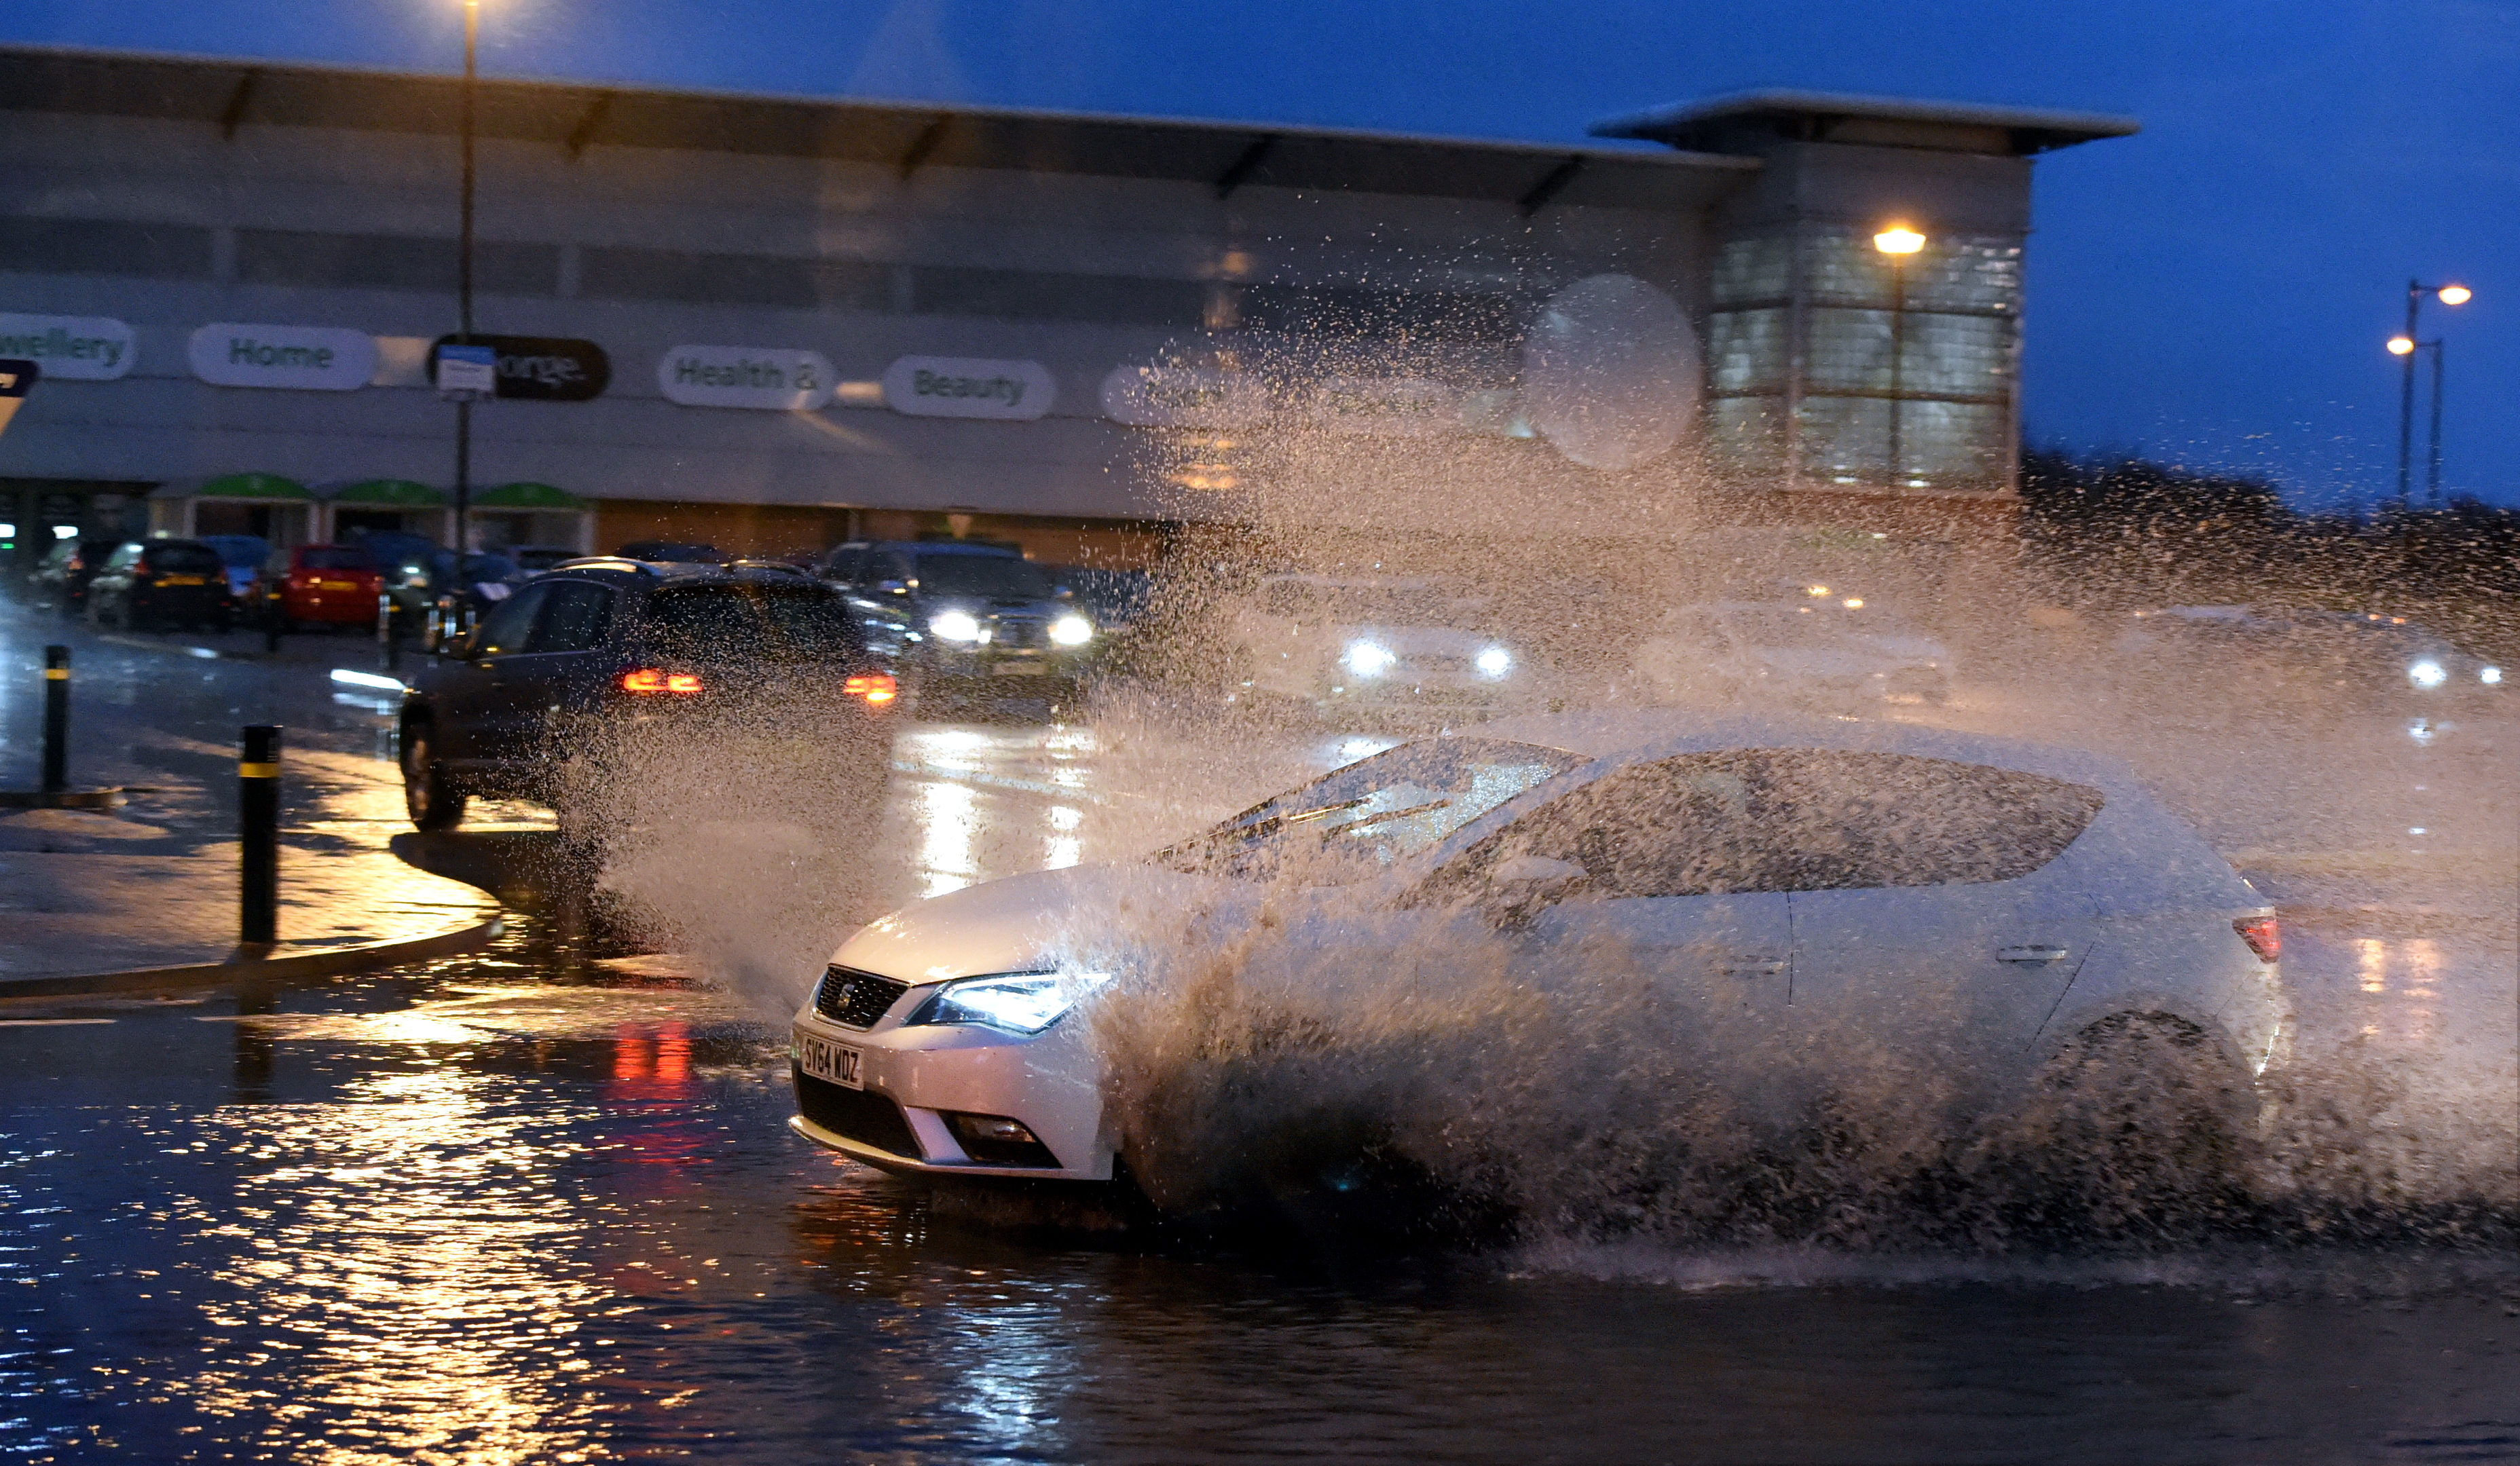 Torrential rain caused flooding at the shopping complex at the beach.